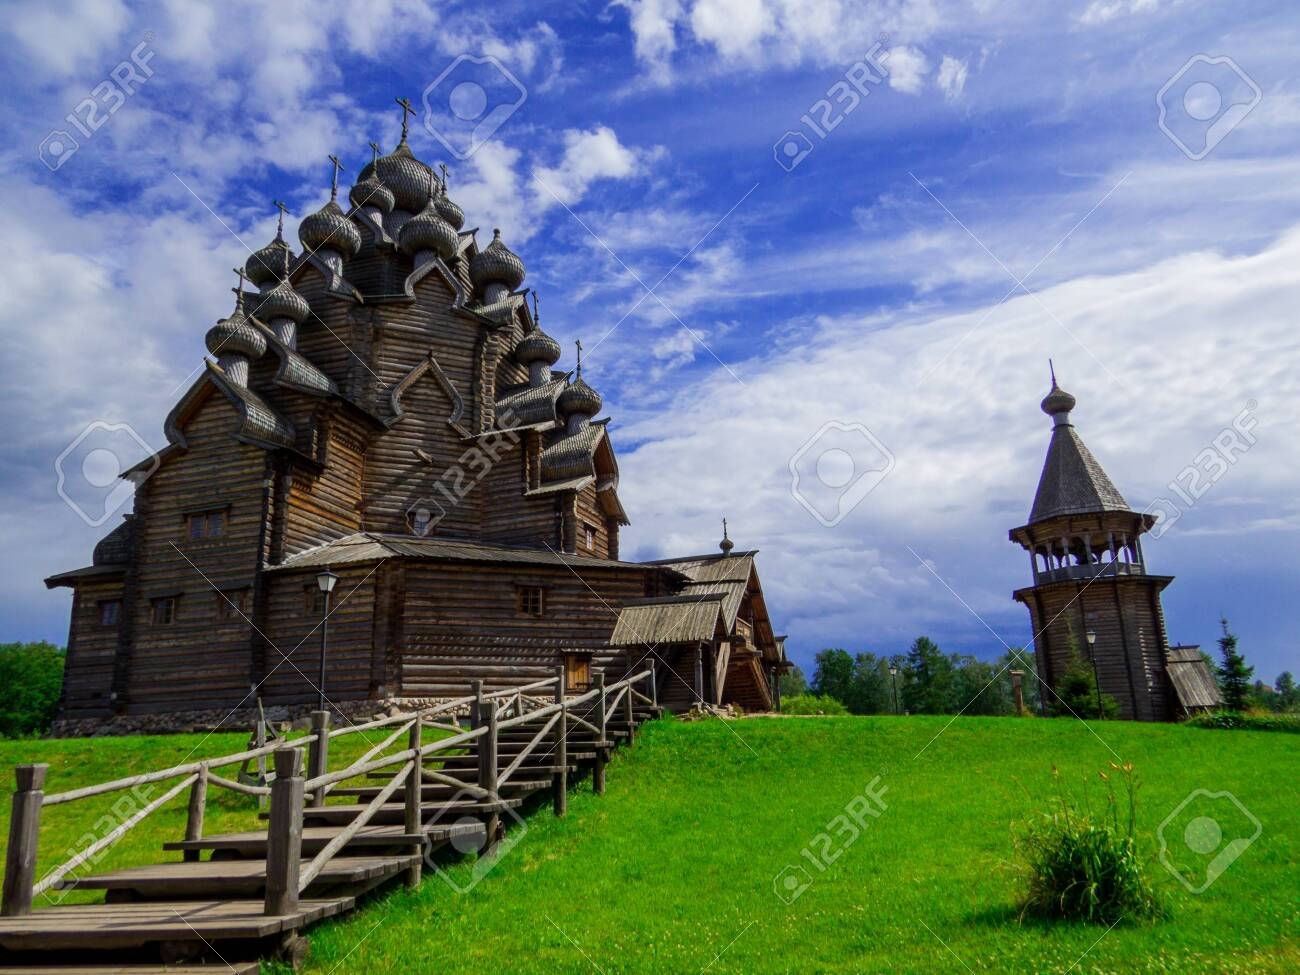 View of the wooden Church of the Intercession of the Holy Virgin in St. Petersburg, Russia - 151391742